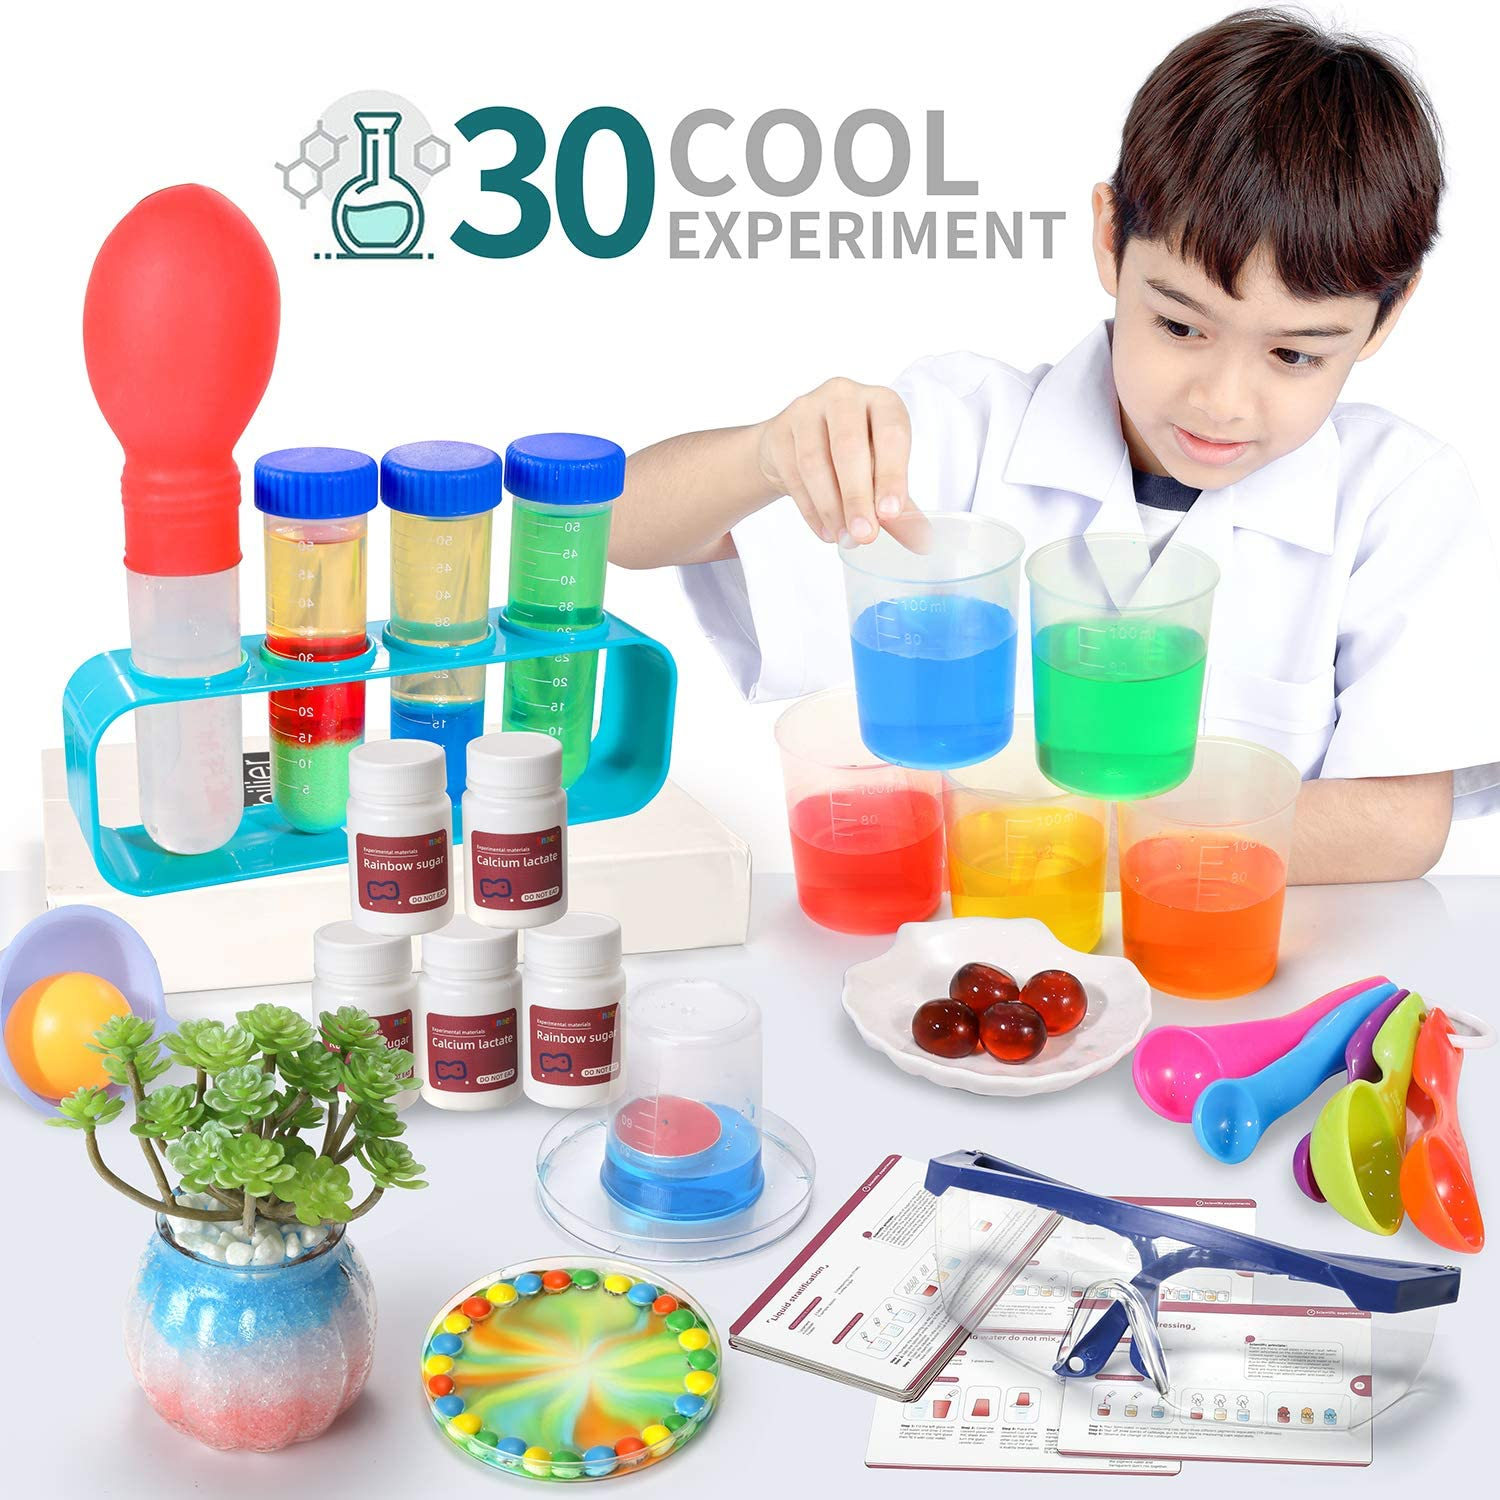 SNAEN Science Kit with 30 Science Lab Experiments,DIY STEM Educational Toys for Kids Aged 3 4+,Discover in Learning,Non-Hazardous,Bottle Packaging